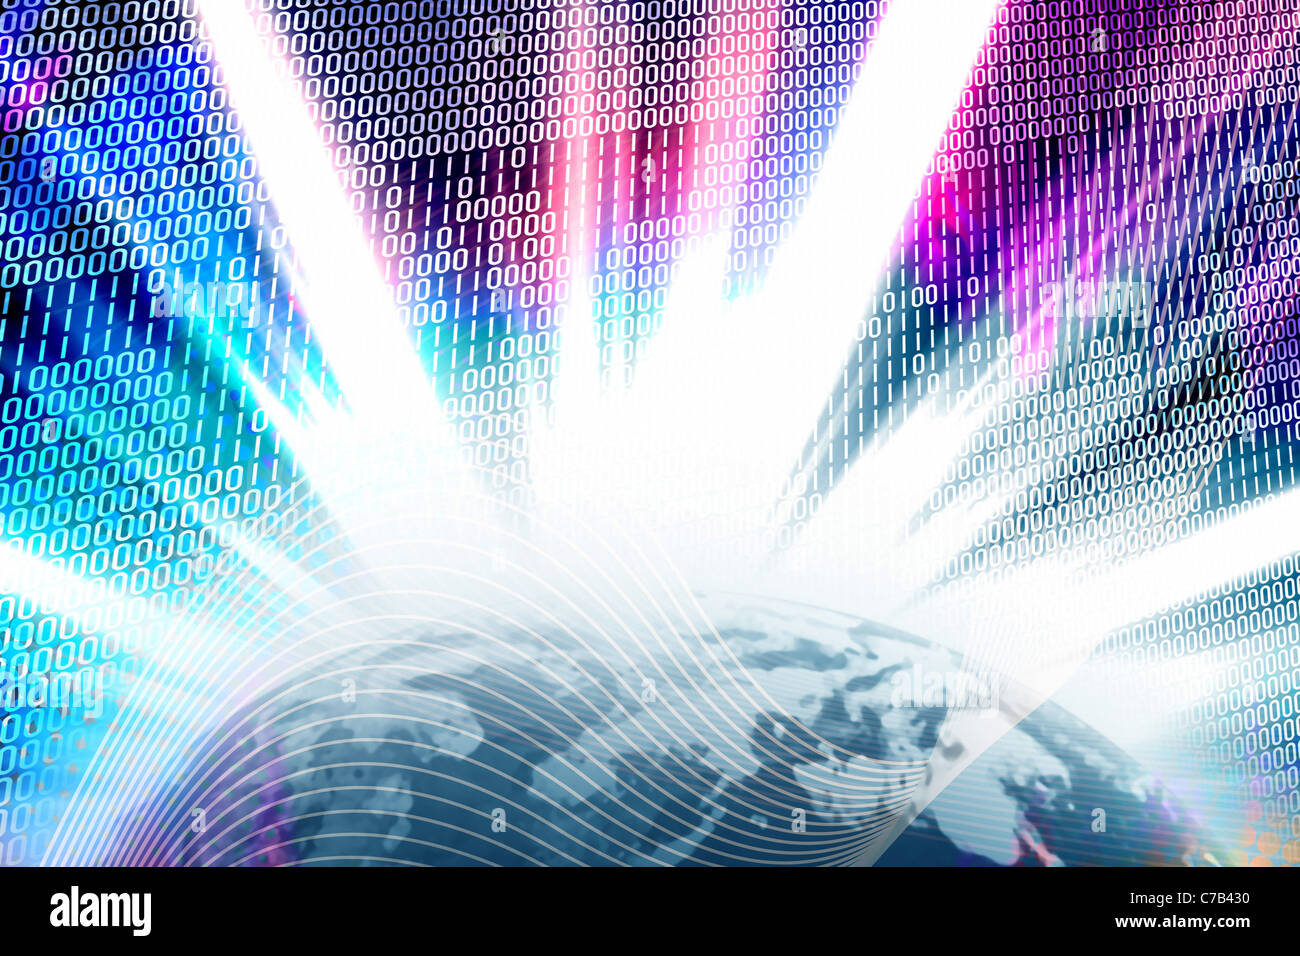 Abstract background with binary code and solar flares over a glowing globe. - Stock Image